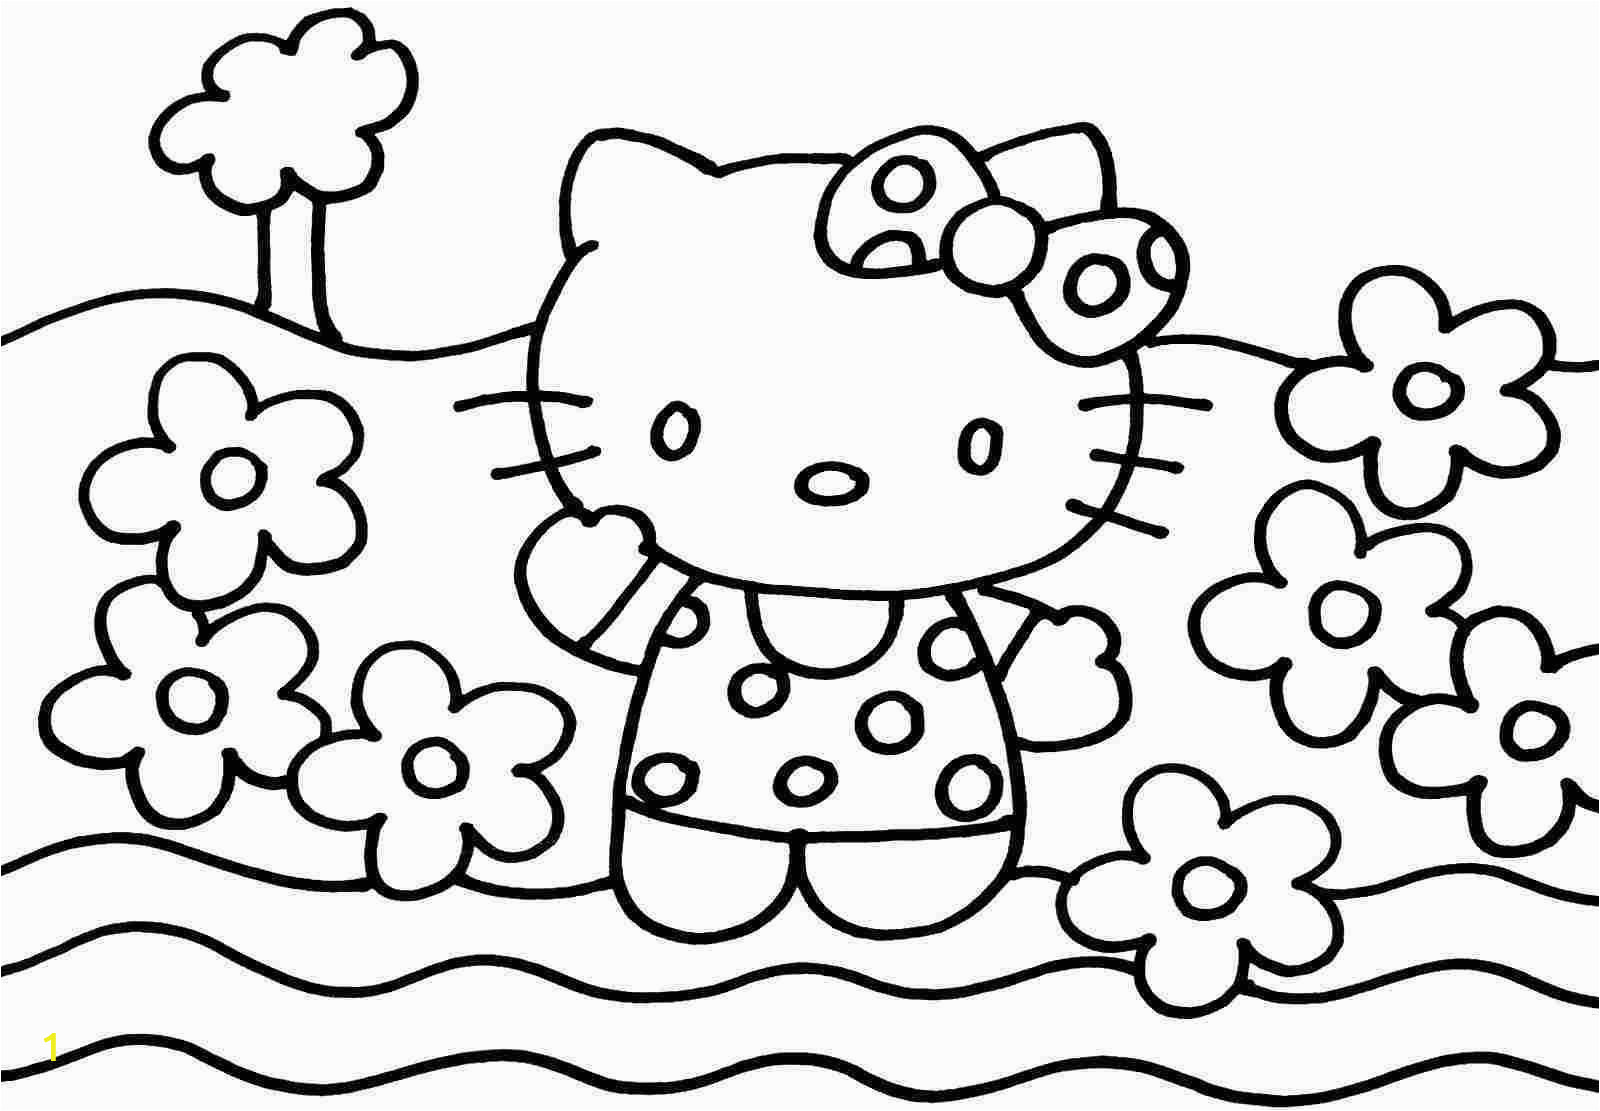 coloring pages of hello kitty and friends coloring pages of hello kitty and friends and hello friends of kitty coloring pages